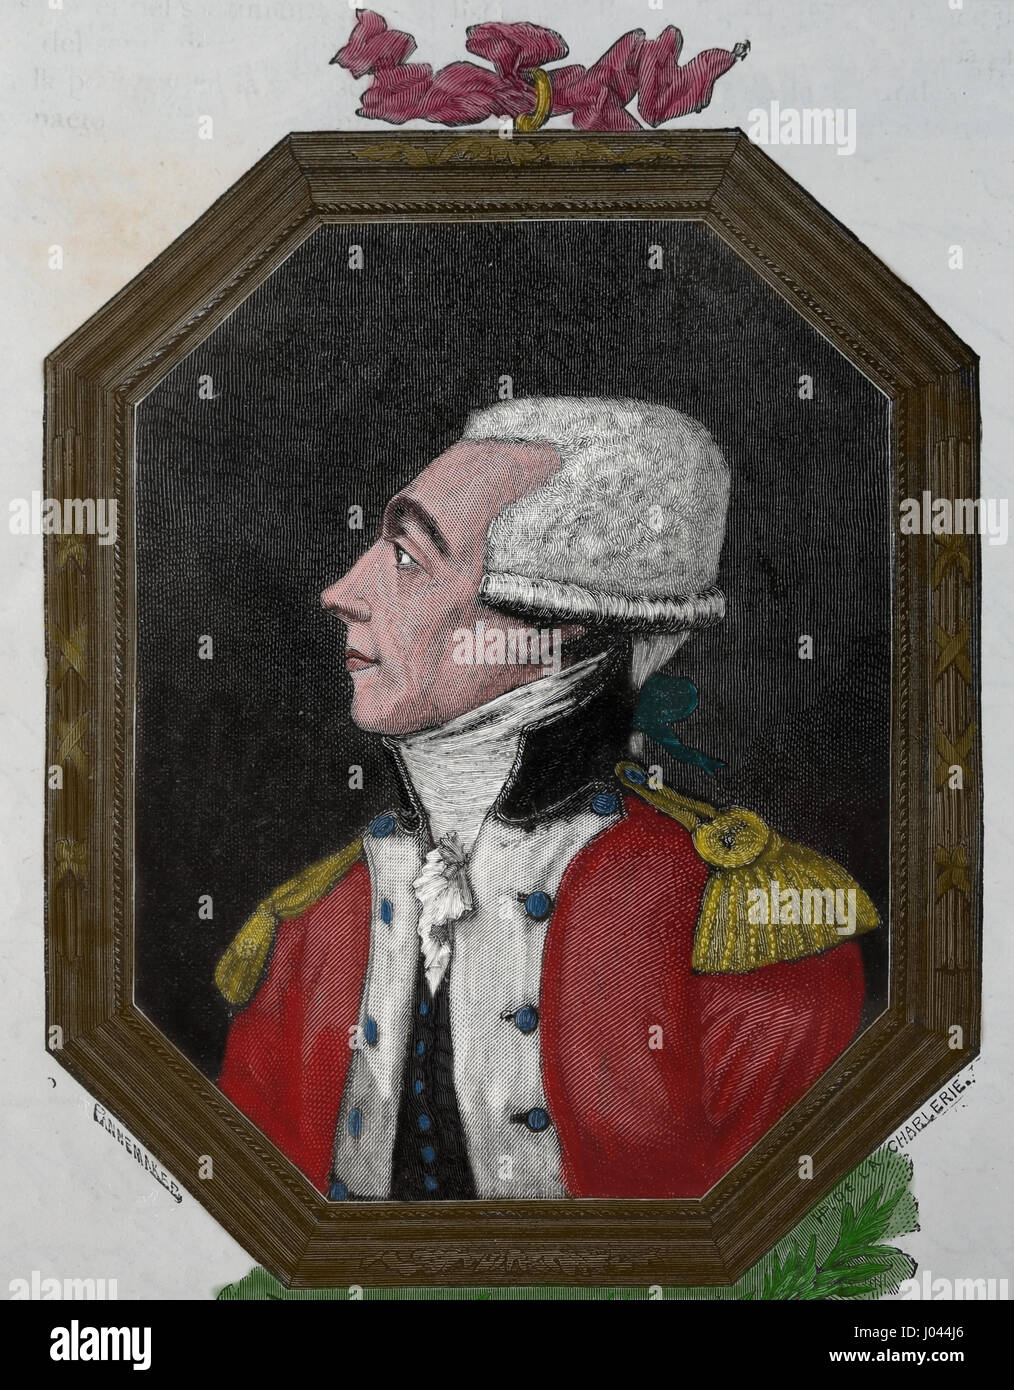 Marquis de Lafayette (1757-1834). French aristocral and military. Engraving Nuestro Siglo,1883.  Spanish edition. - Stock Image